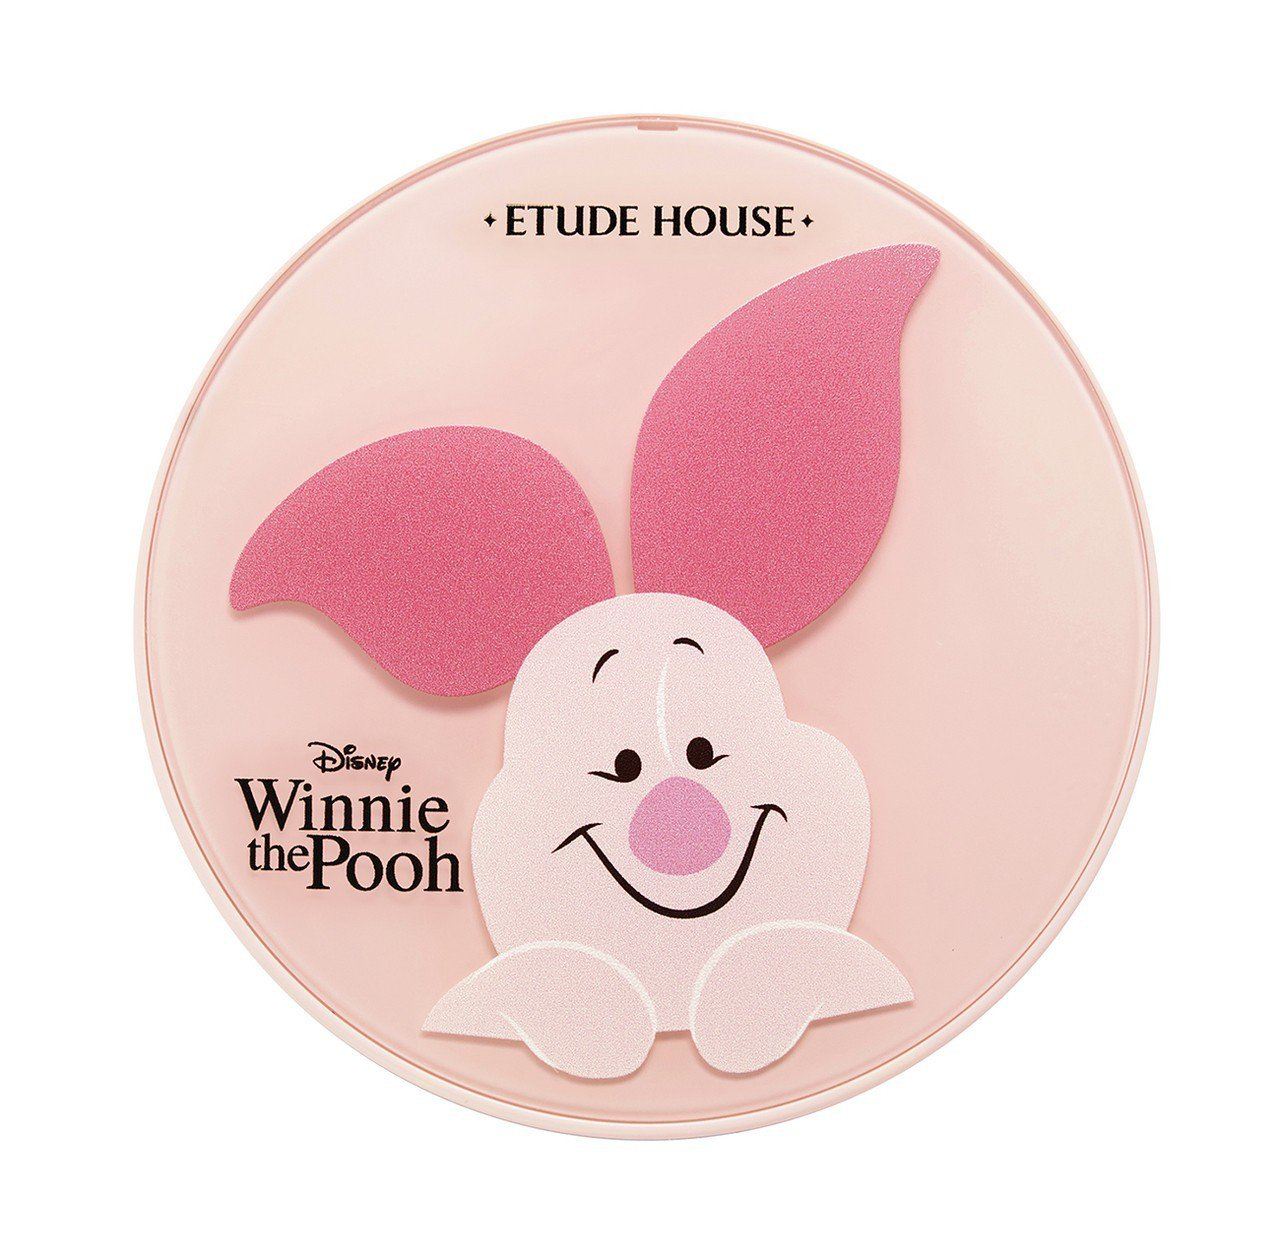 ETUDE HOUSE Happy With Piglet限定版氣墊粉餅盒,售價...